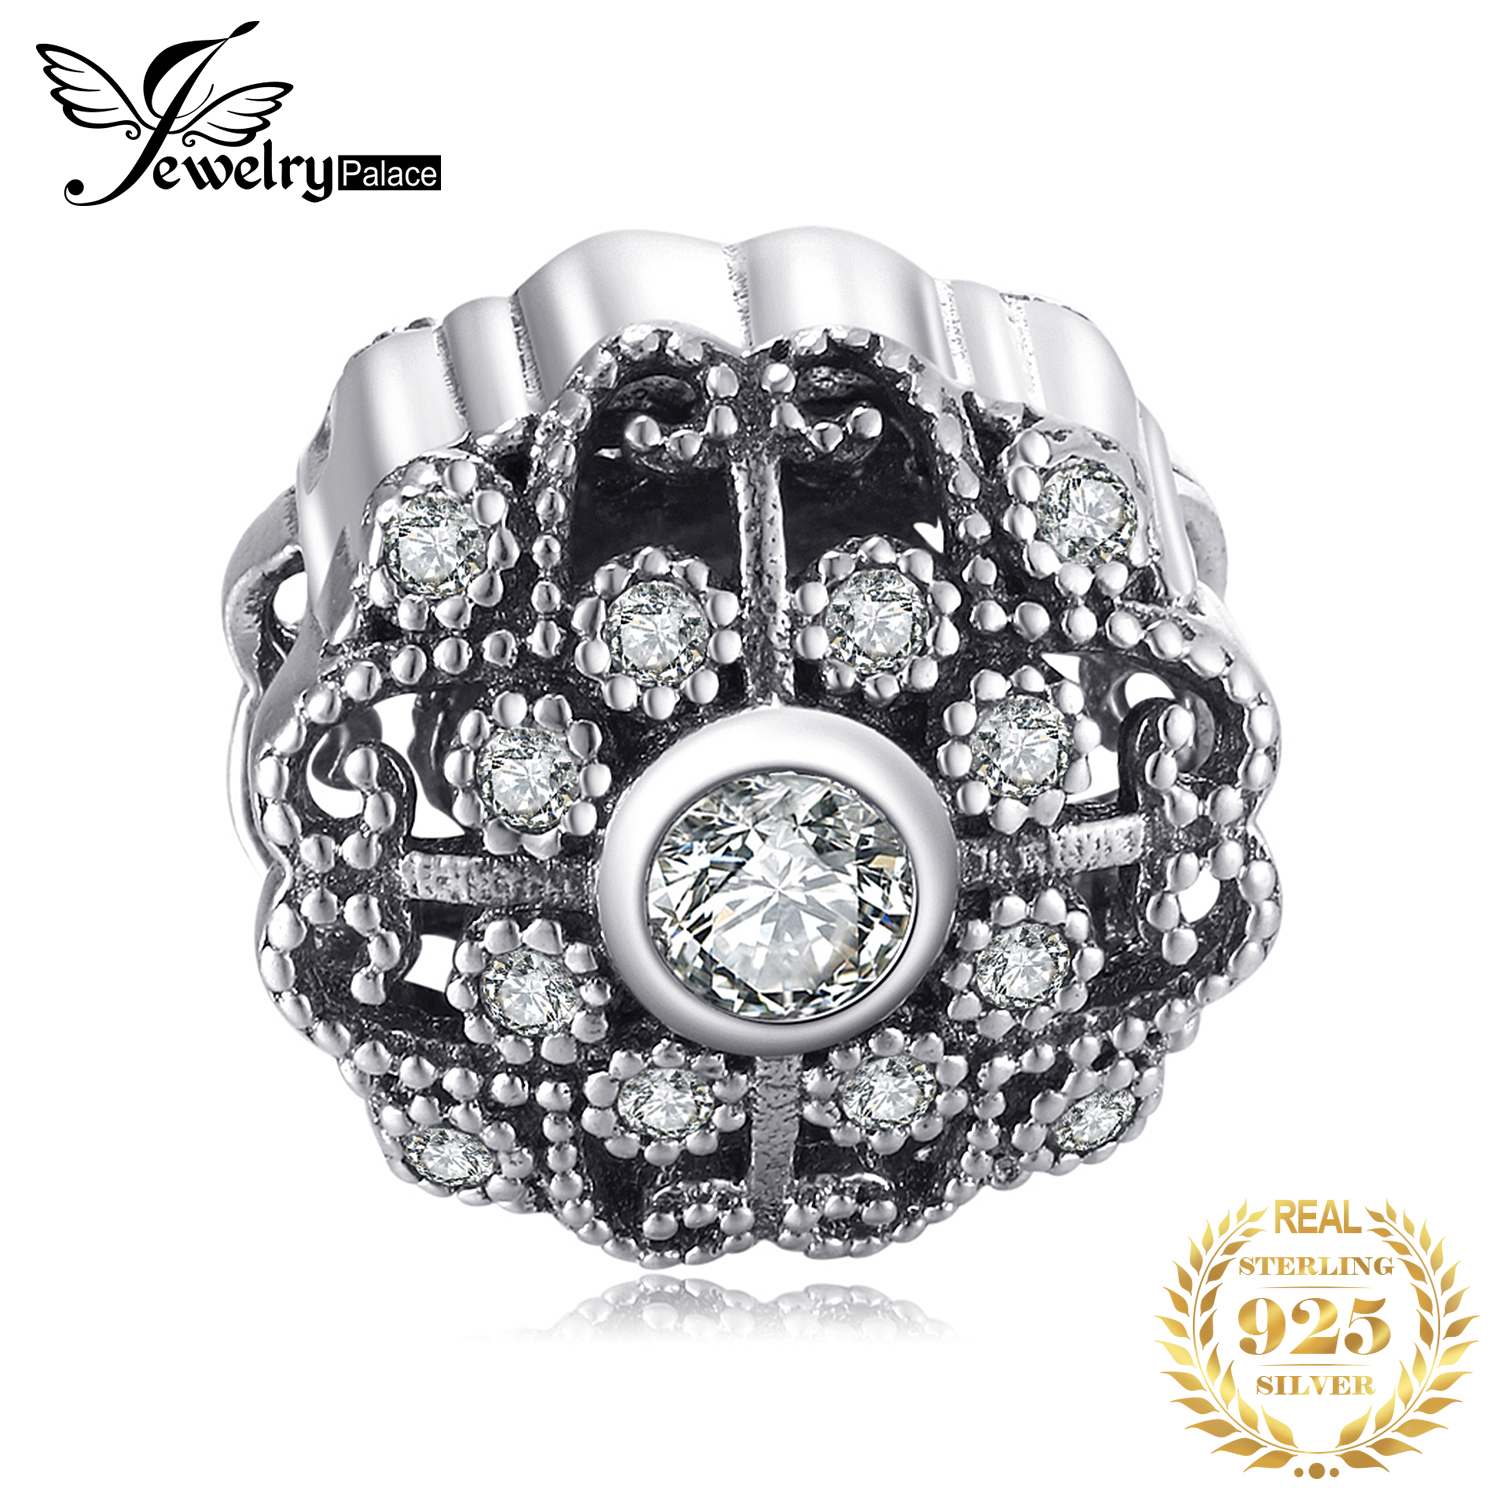 Jewelrypalace 925 Sterling Silver Vintage Auspicious Cubic Zirconia Beads Charms Fit Bracelets Gifts For Women Fashion Jewelry